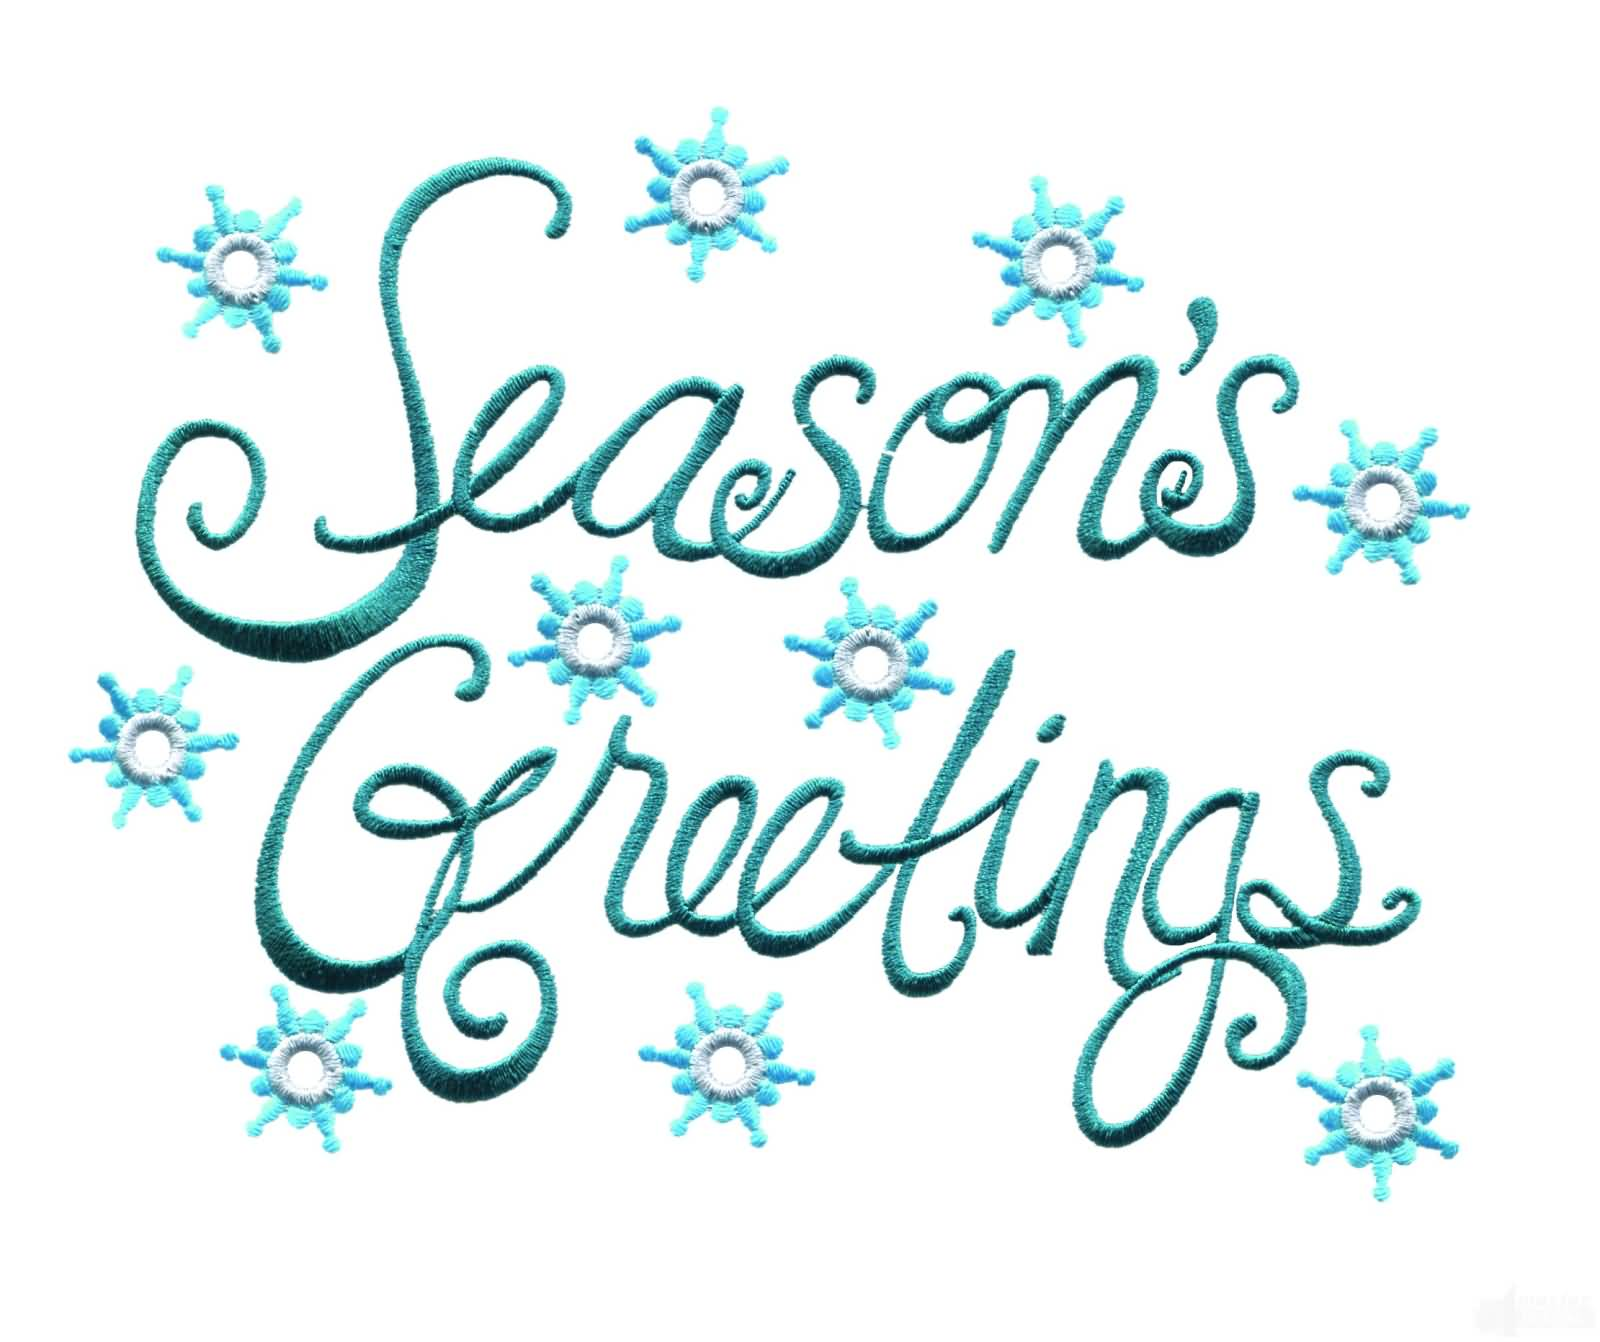 50 most beautiful season u2019s greeting pictures and photos Holiday Season Greetings seasons greetings black and white clipart